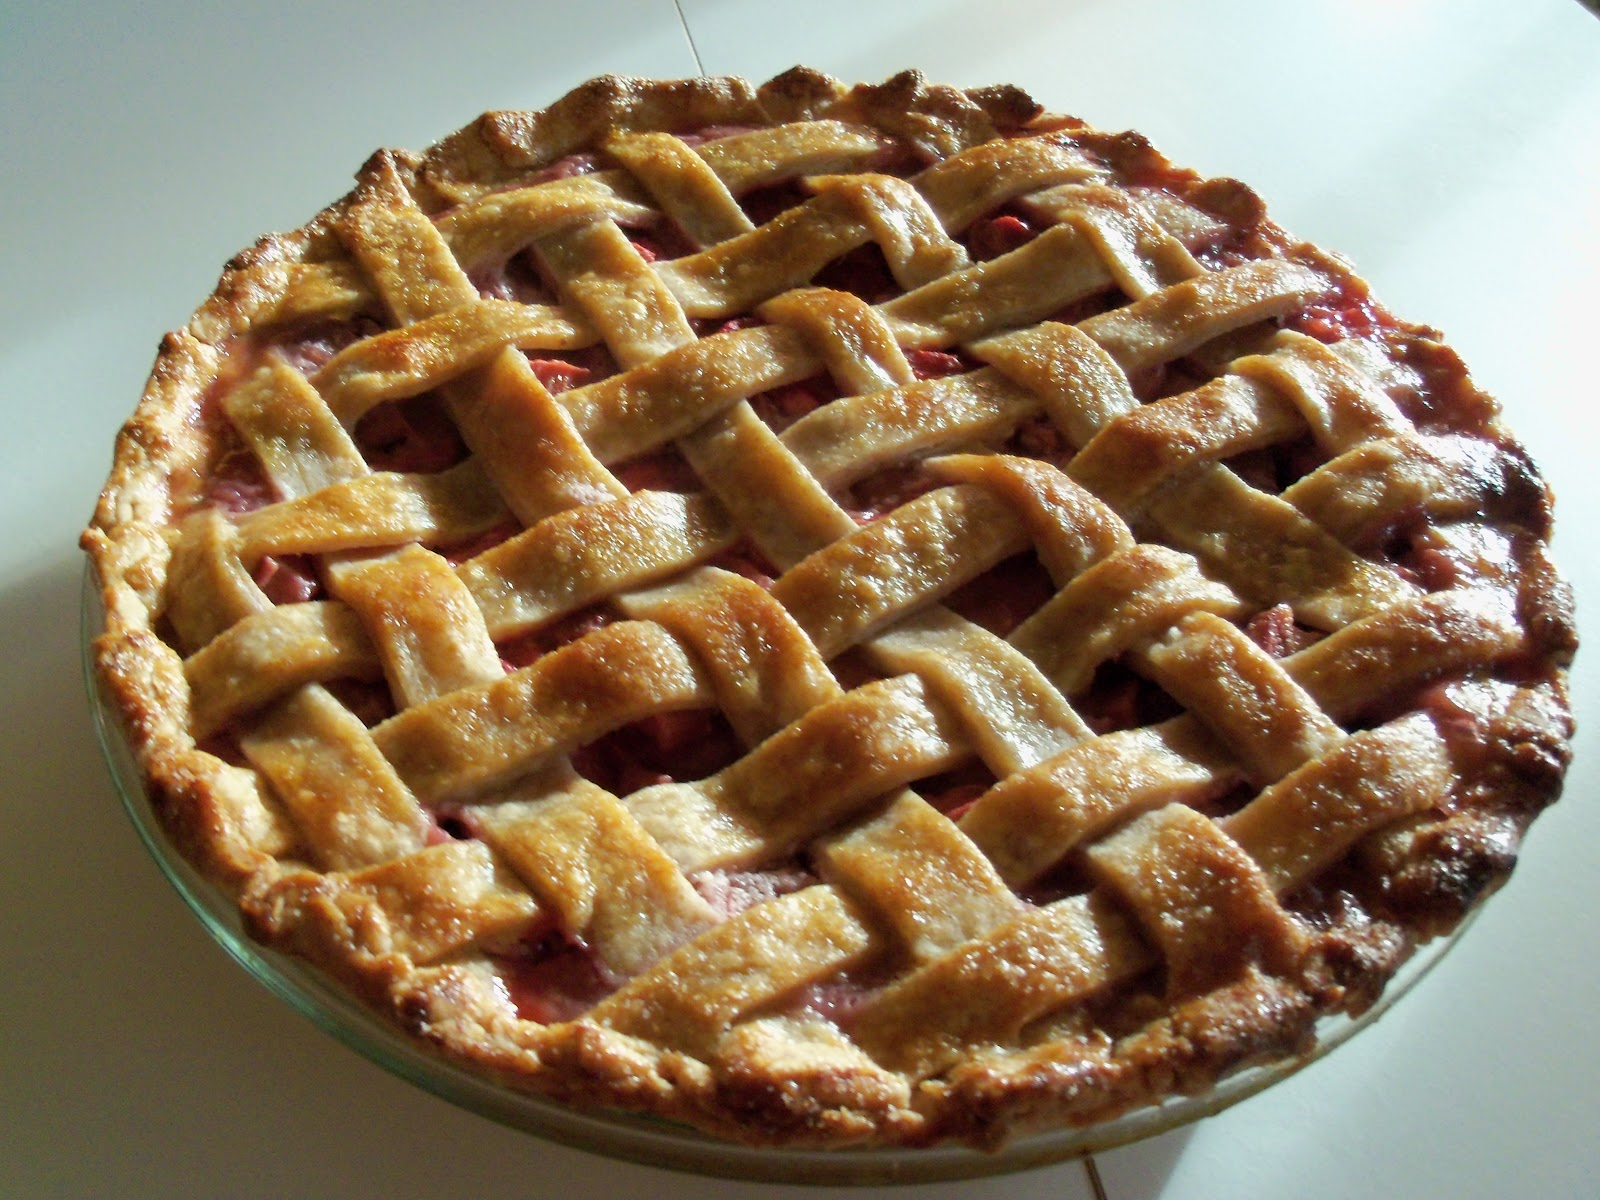 File:Rhubarb Pie Lattice Crust